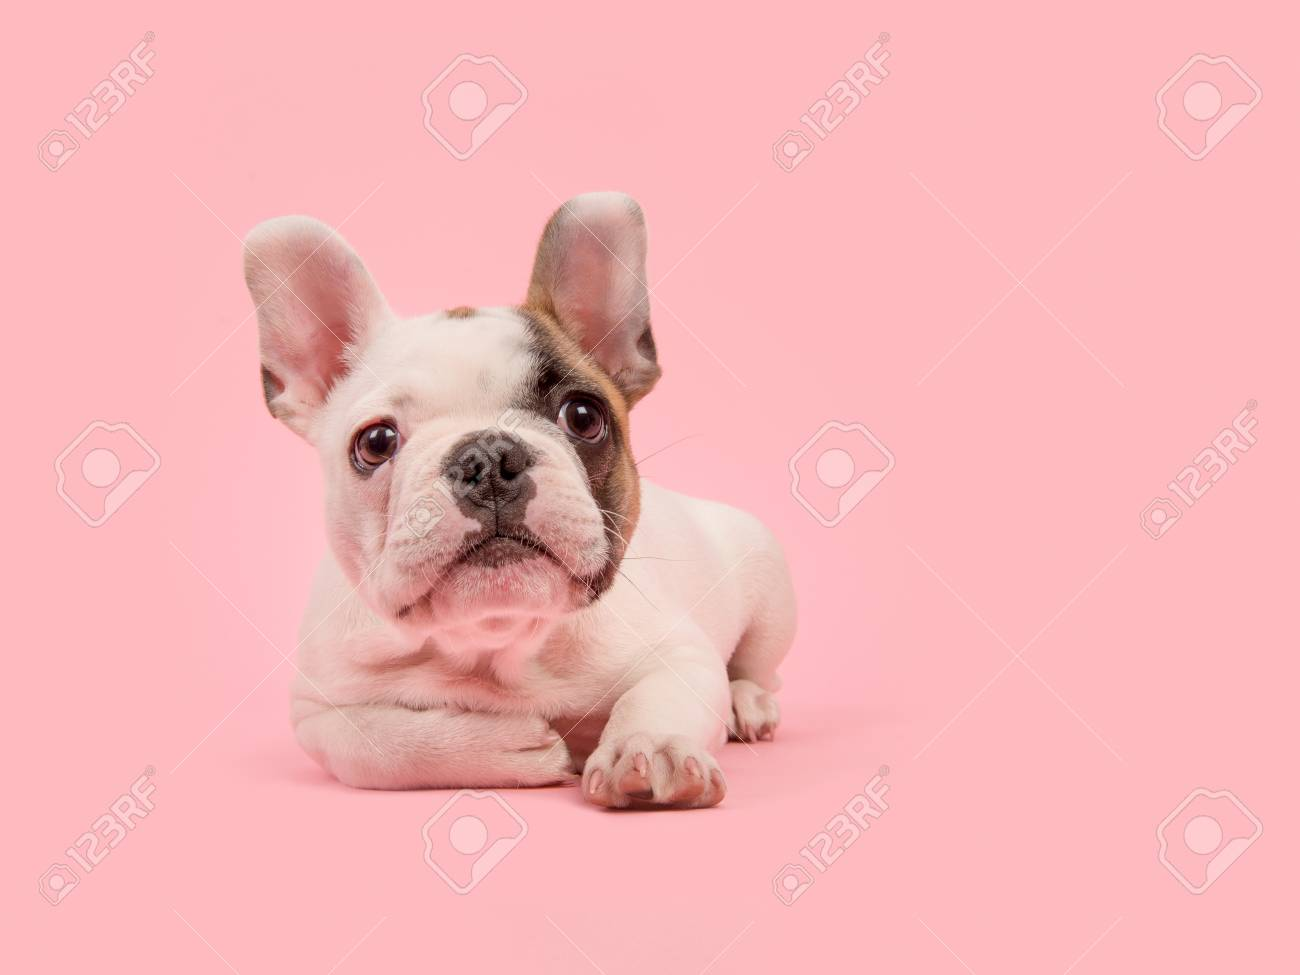 Cute White And Brown French Bulldog Puppy Lying Down Looking Stock Photo Picture And Royalty Free Image Image 81416491